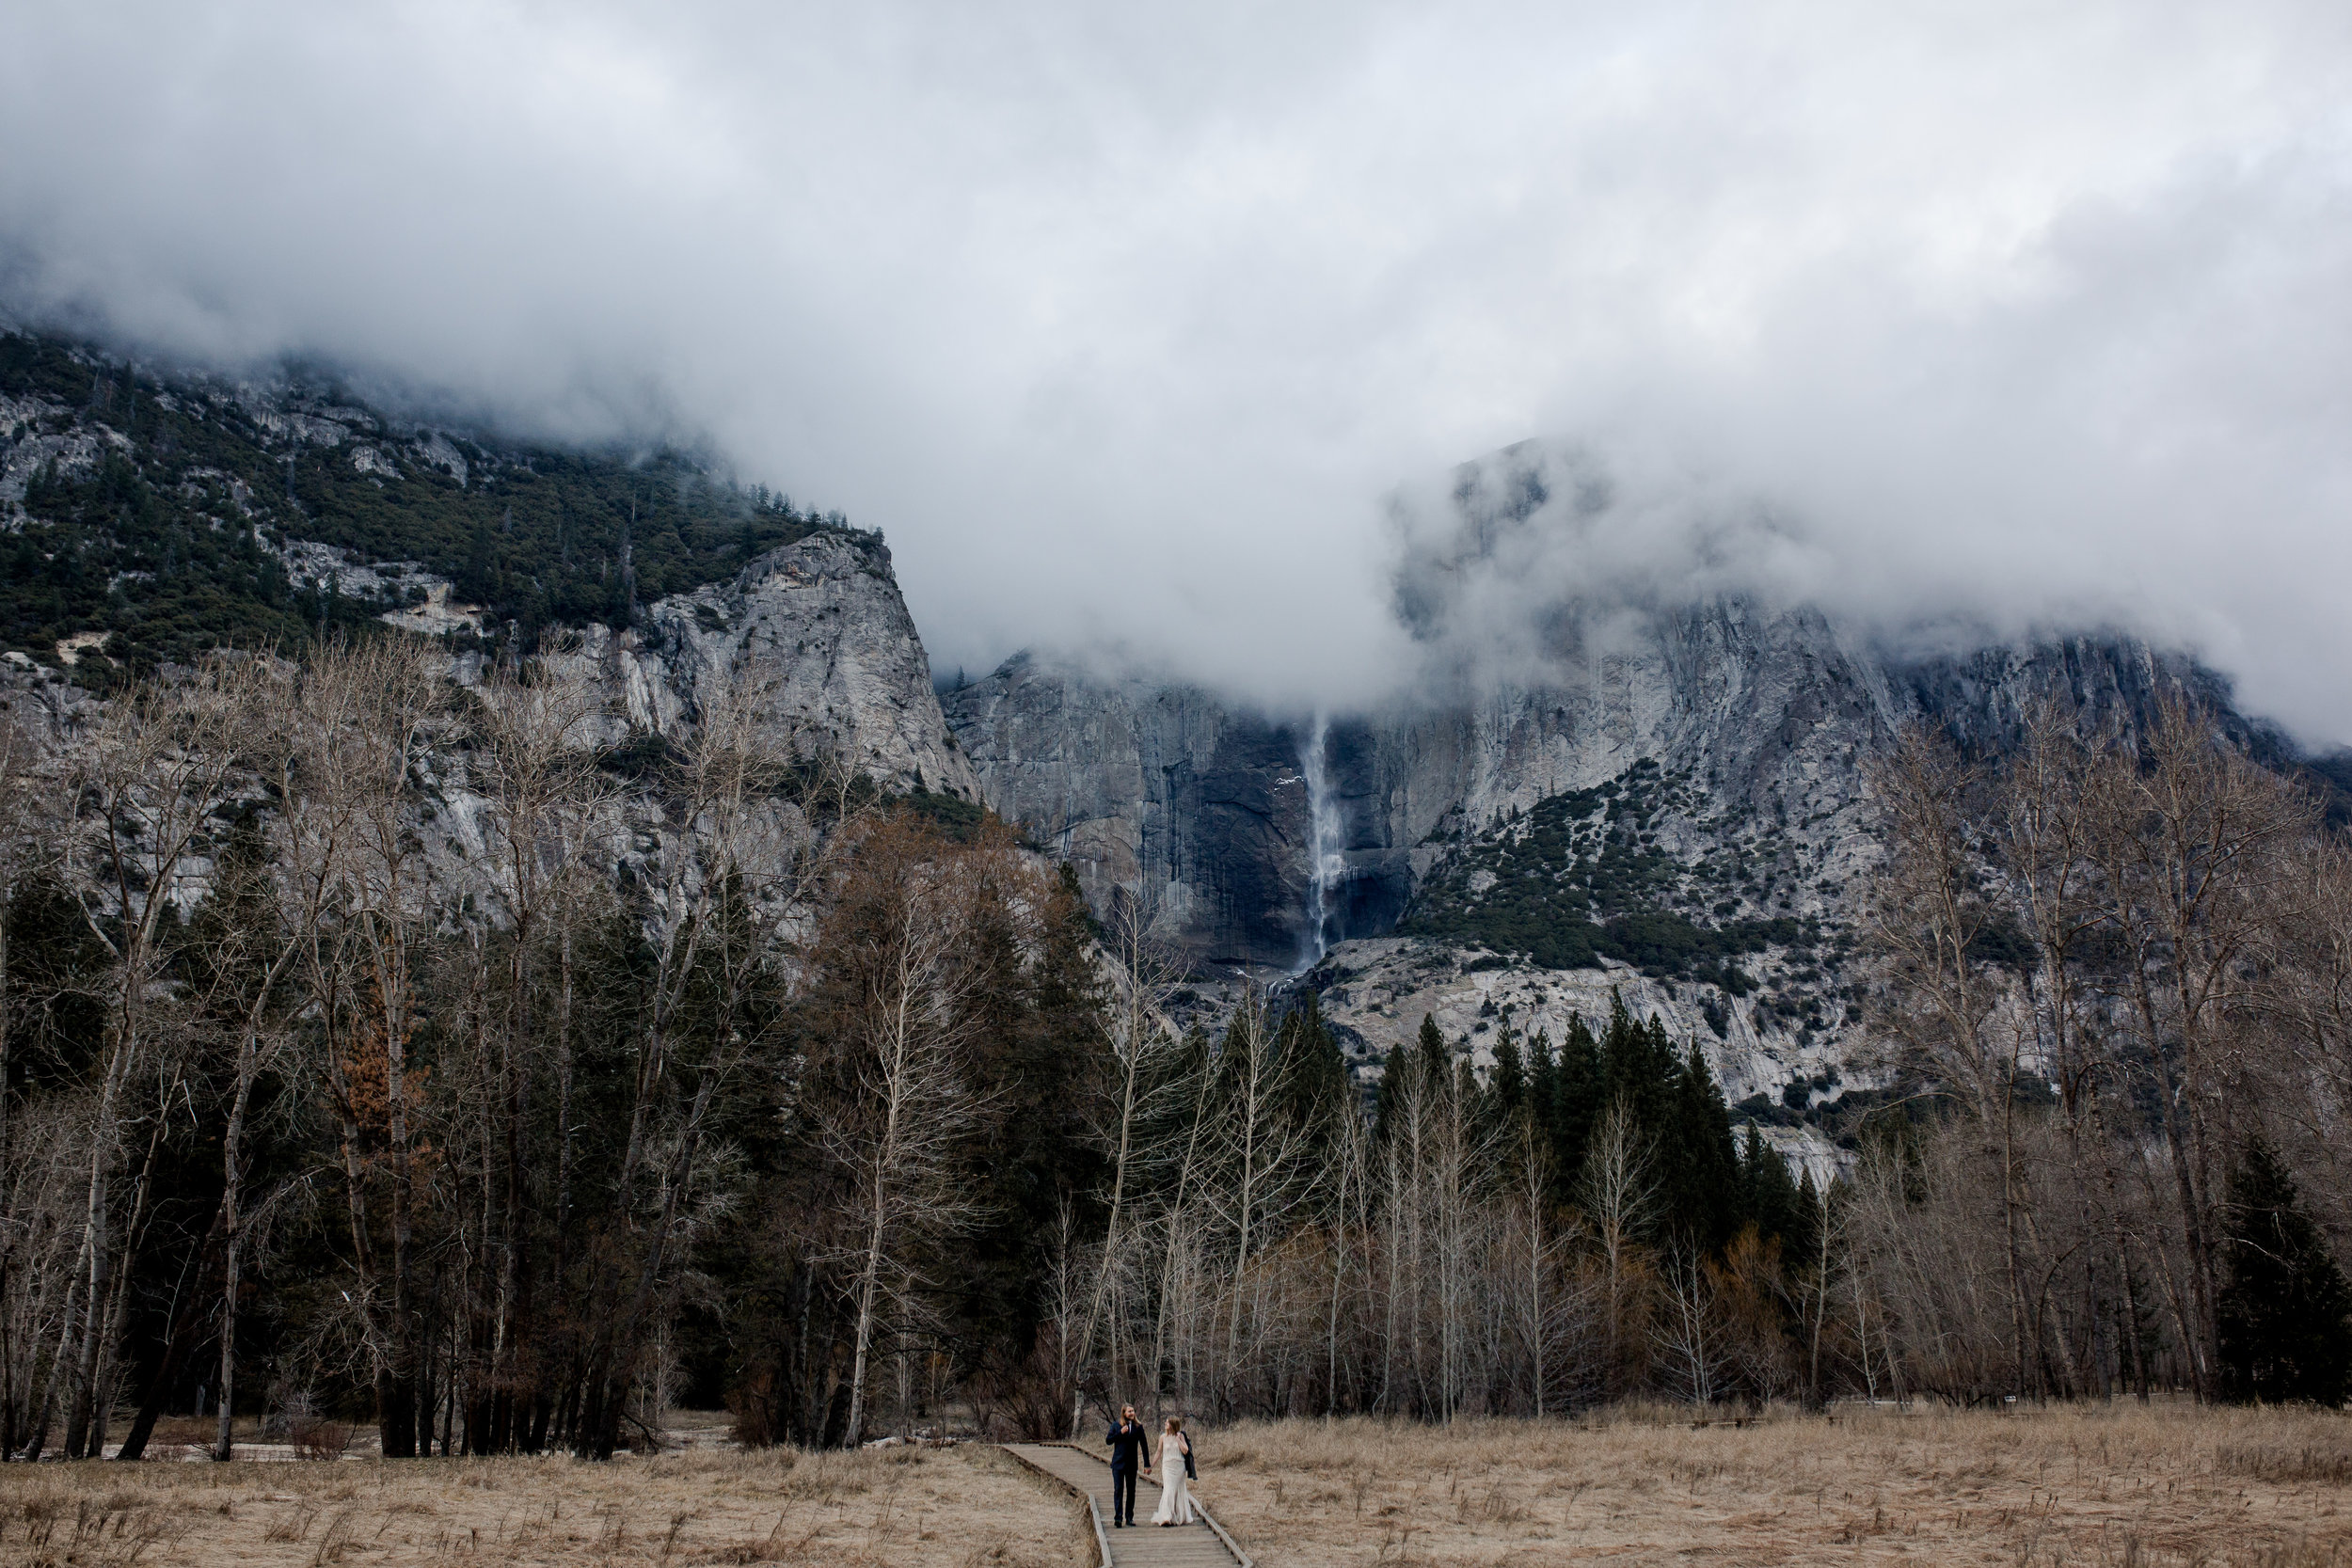 nicole-daacke-photography-yousemite-national-park-elopement-photographer-winter-cloud-moody-elope-inspiration-yosemite-valley-tunnel-view-winter-cloud-fog-weather-wedding-photos-91.jpg